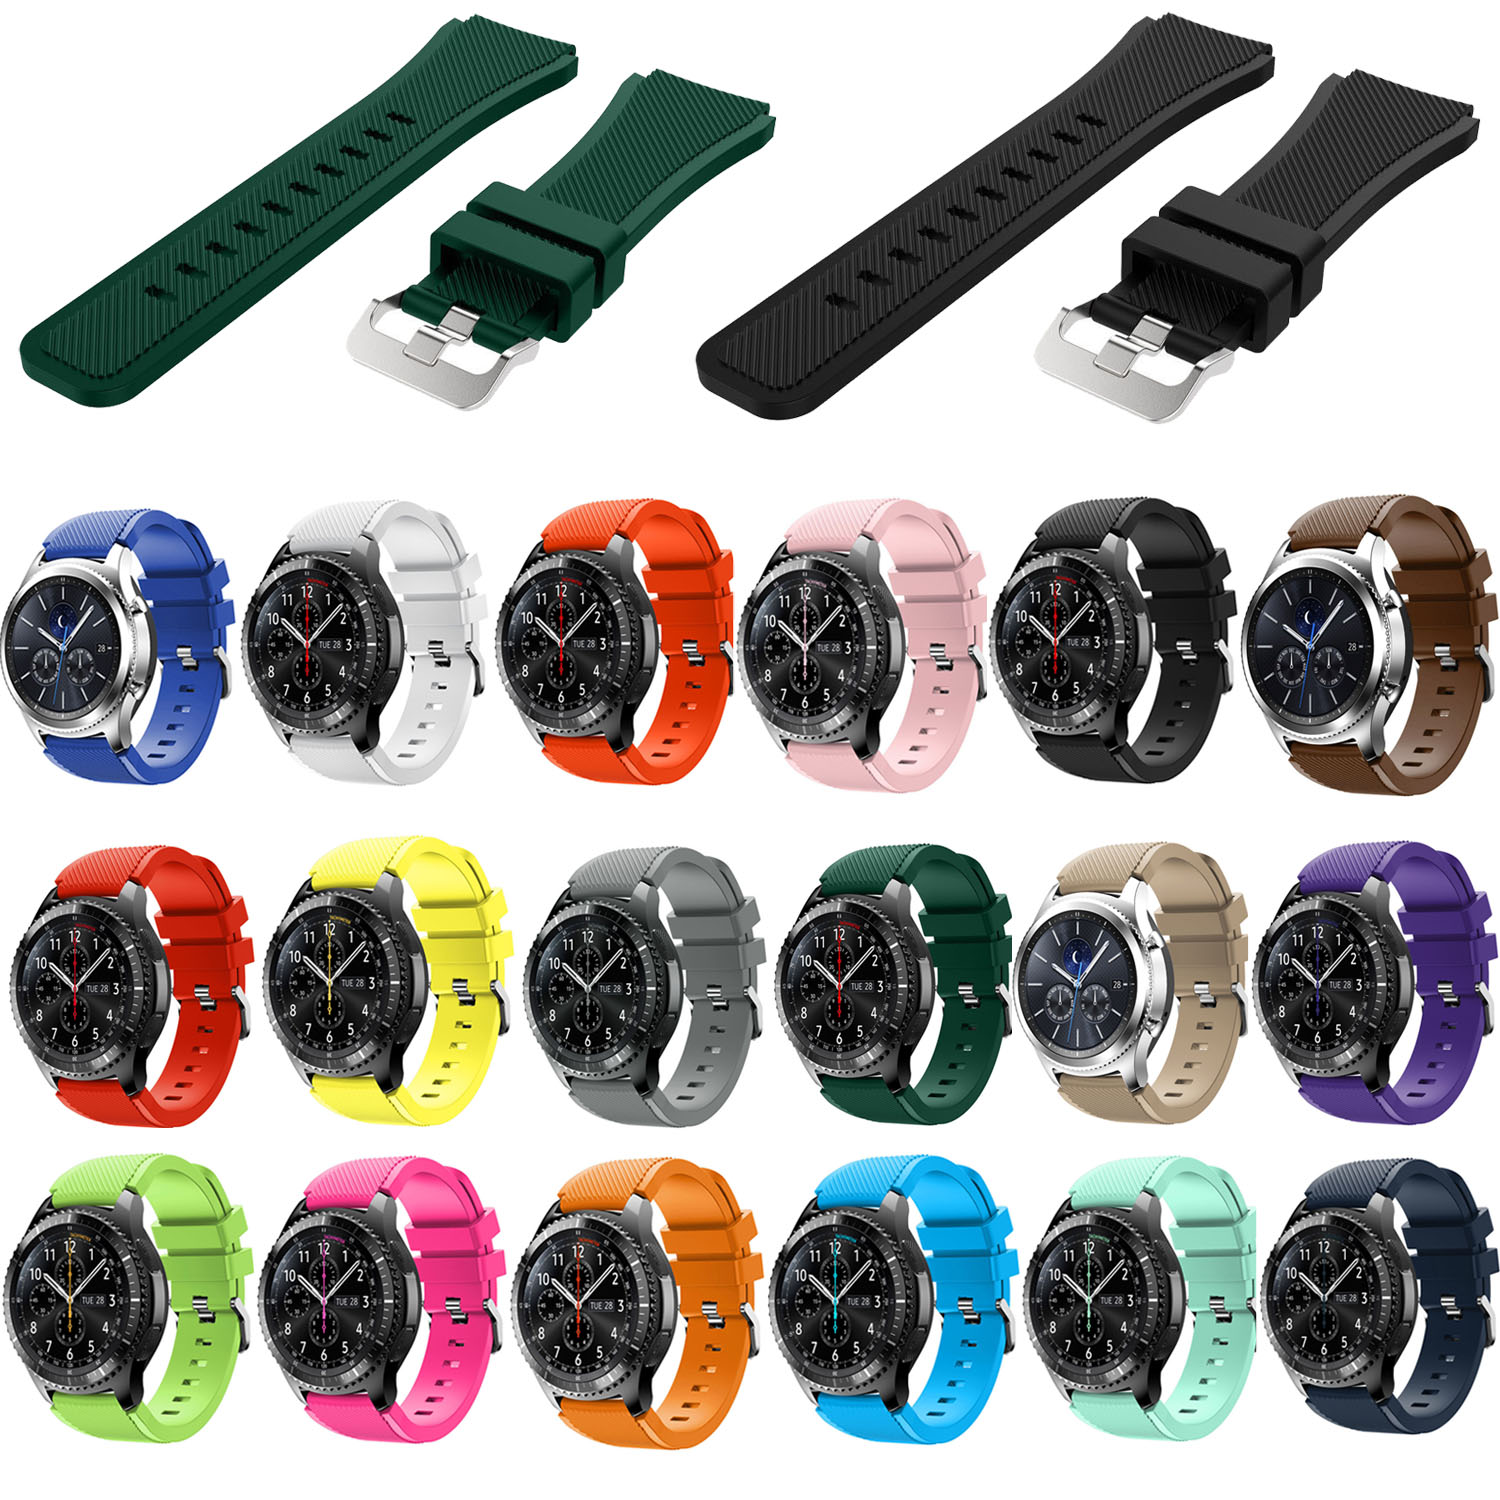 18 Colors Rubber Wrist Strap for Samsung Gear S3 Frontier Silicone Watch Band for Samsung Gear S3 Classic Bracelet Band 22mm silicone sport watchband for gear s3 classic frontier 22mm strap for samsung galaxy watch 46mm band replacement strap bracelet